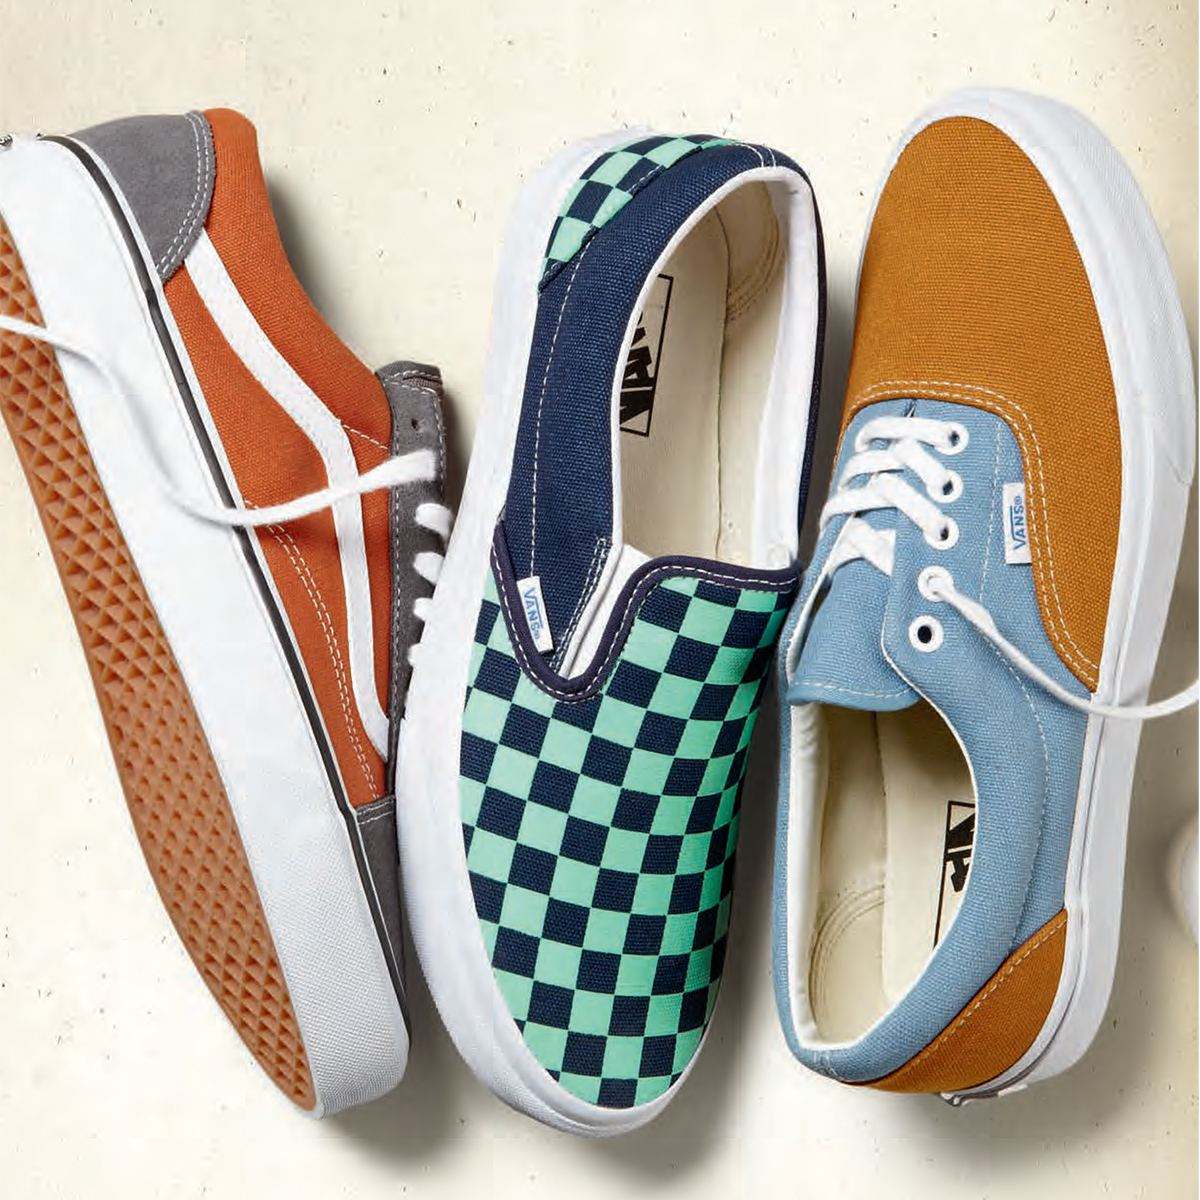 Vans Classics Golden Coast Collection for Spring 2014